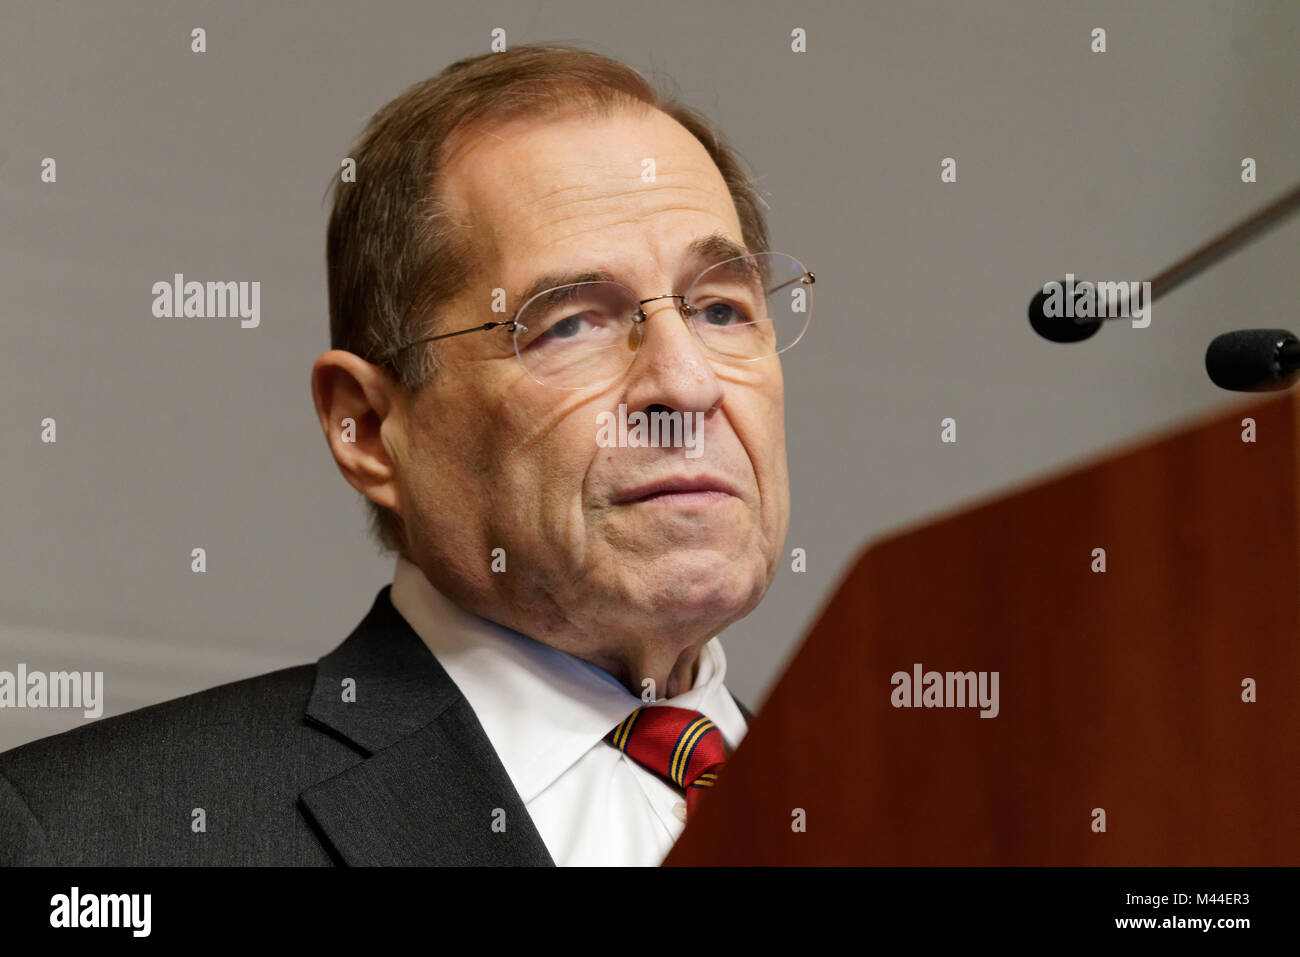 Rep. Jerrold Nadler (D-New York's 10th Congressional District) speaking at a Town Hall meeting on Feb. 12, 2018. - Stock Image